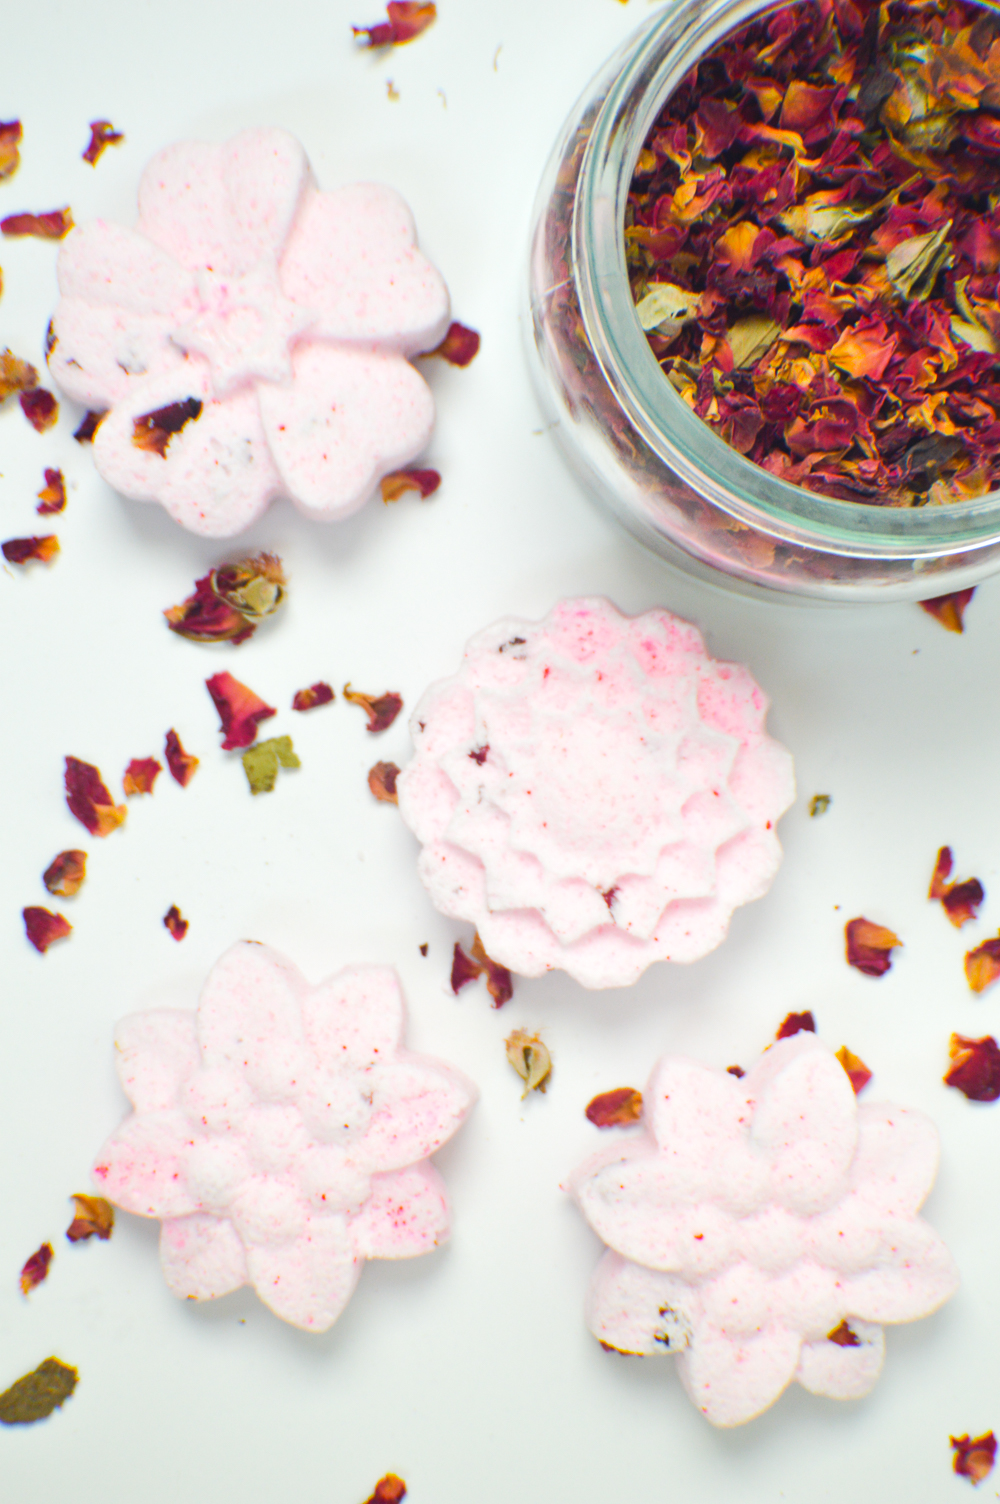 DIY Floral Bath Bombs